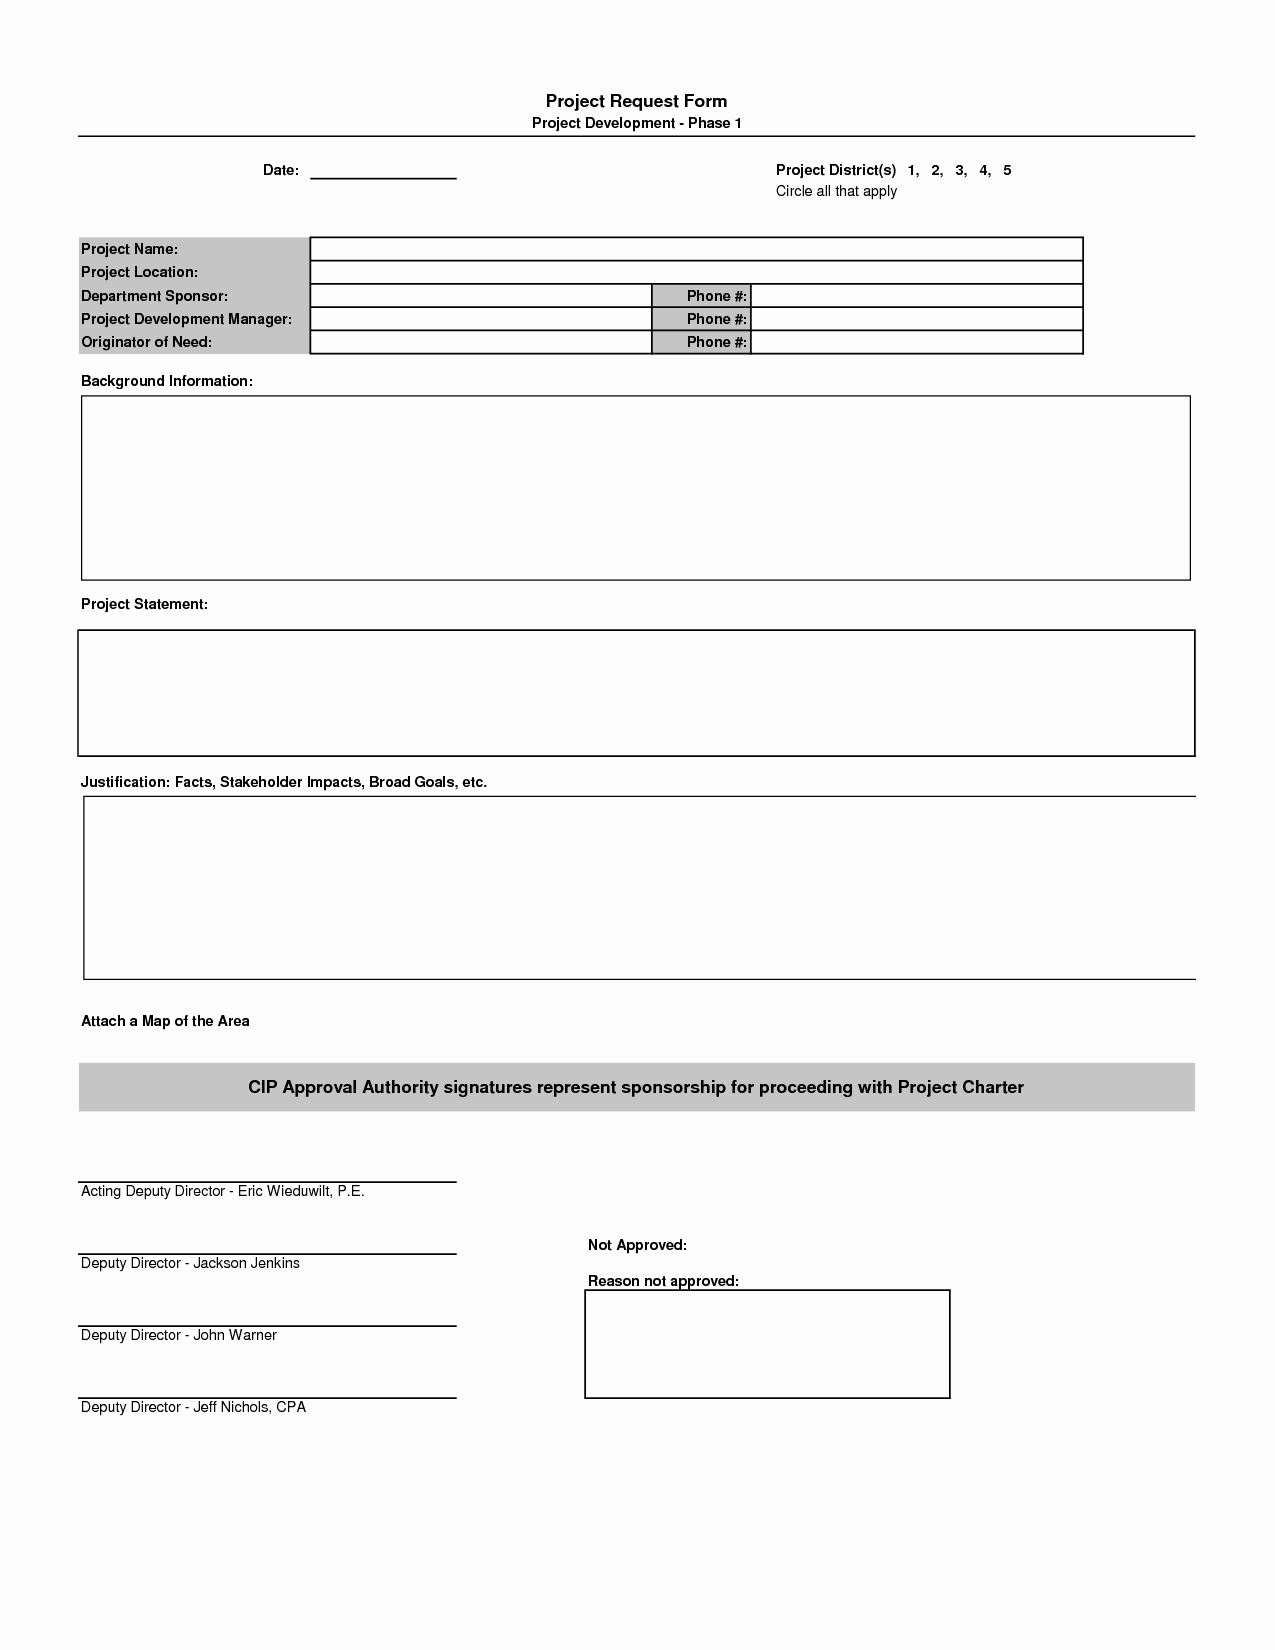 Project Request form Template Inspirational How to Handle Change Request In Project